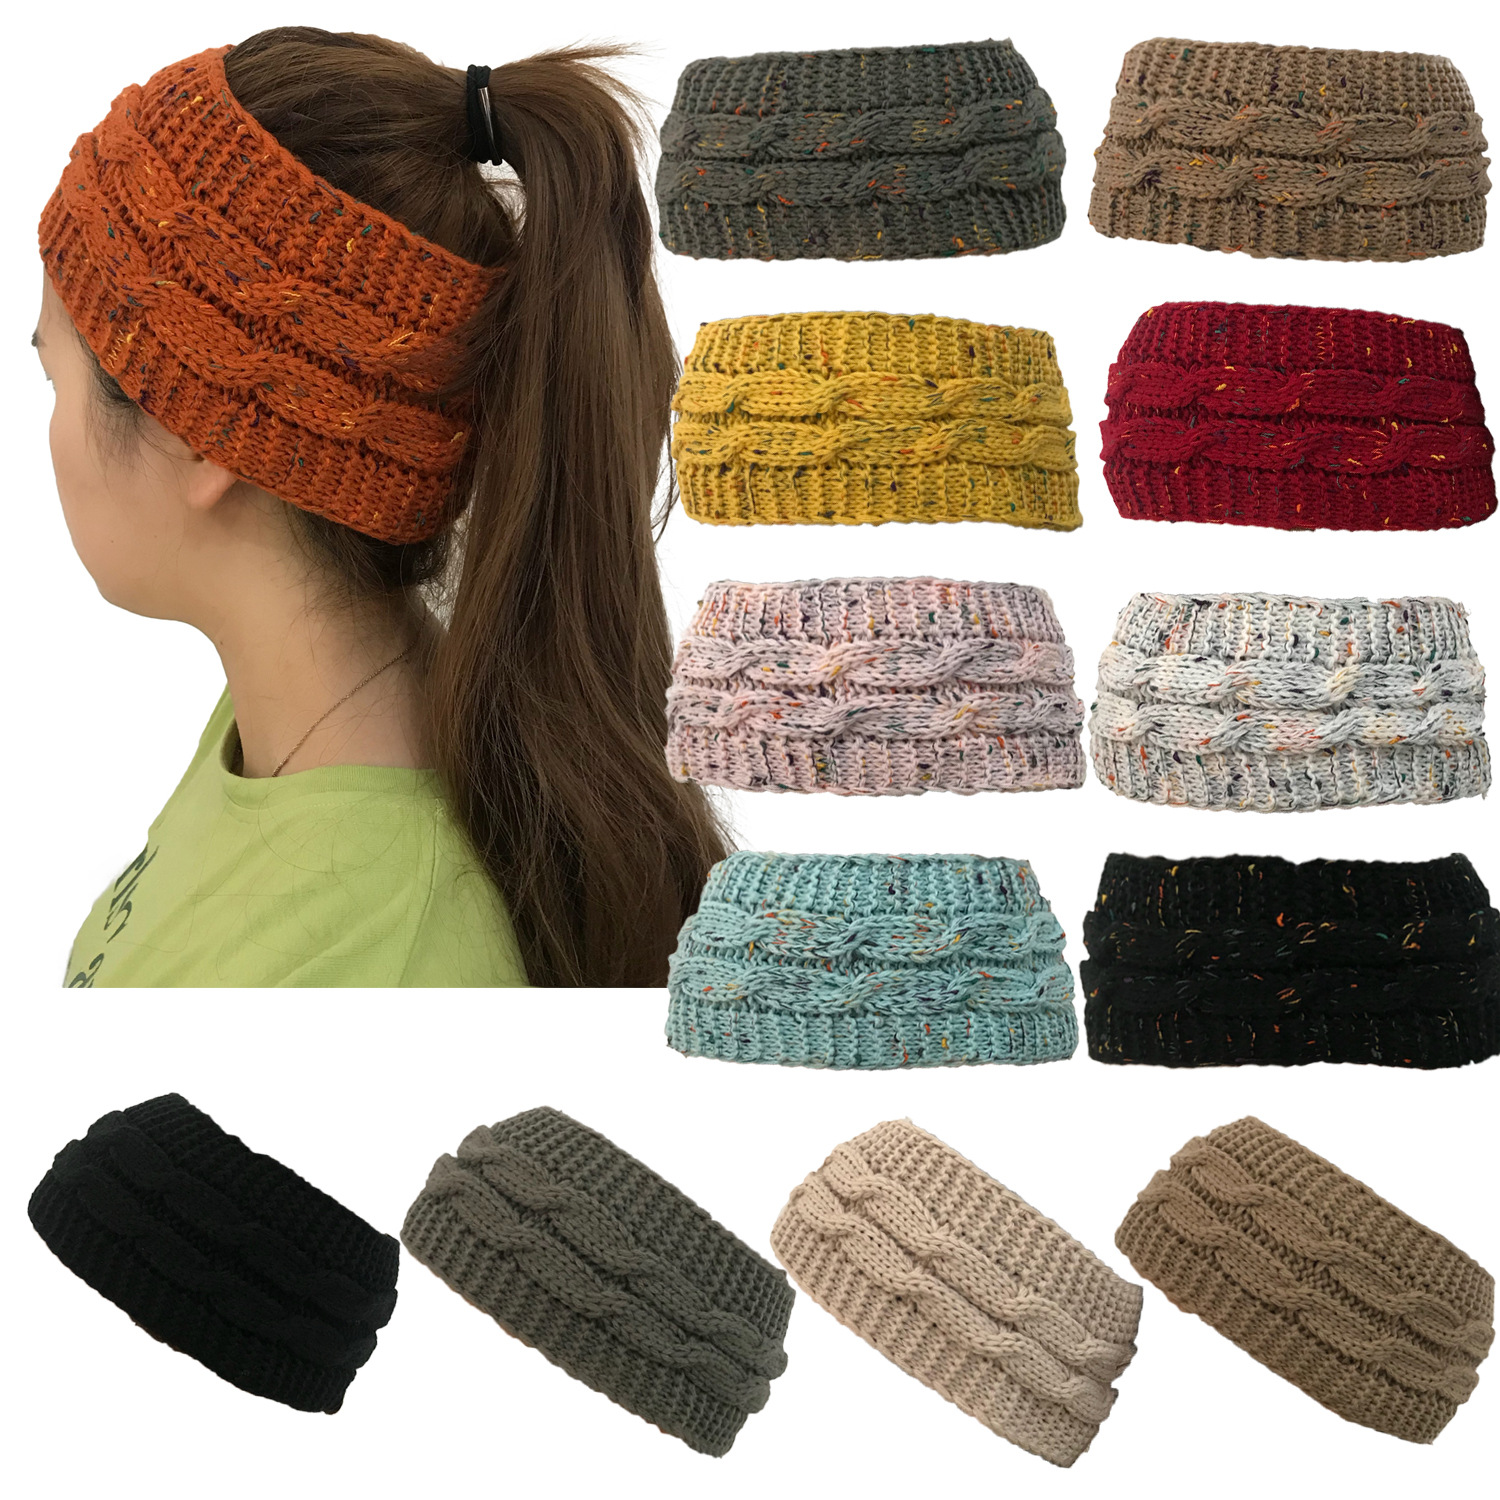 Ponytail Beanies Women Warm Winter Hat For Women Beanie Knitted Head Wear Bun Hats Girl Skull Cap Bonnet Headwear Czapki Zimowe